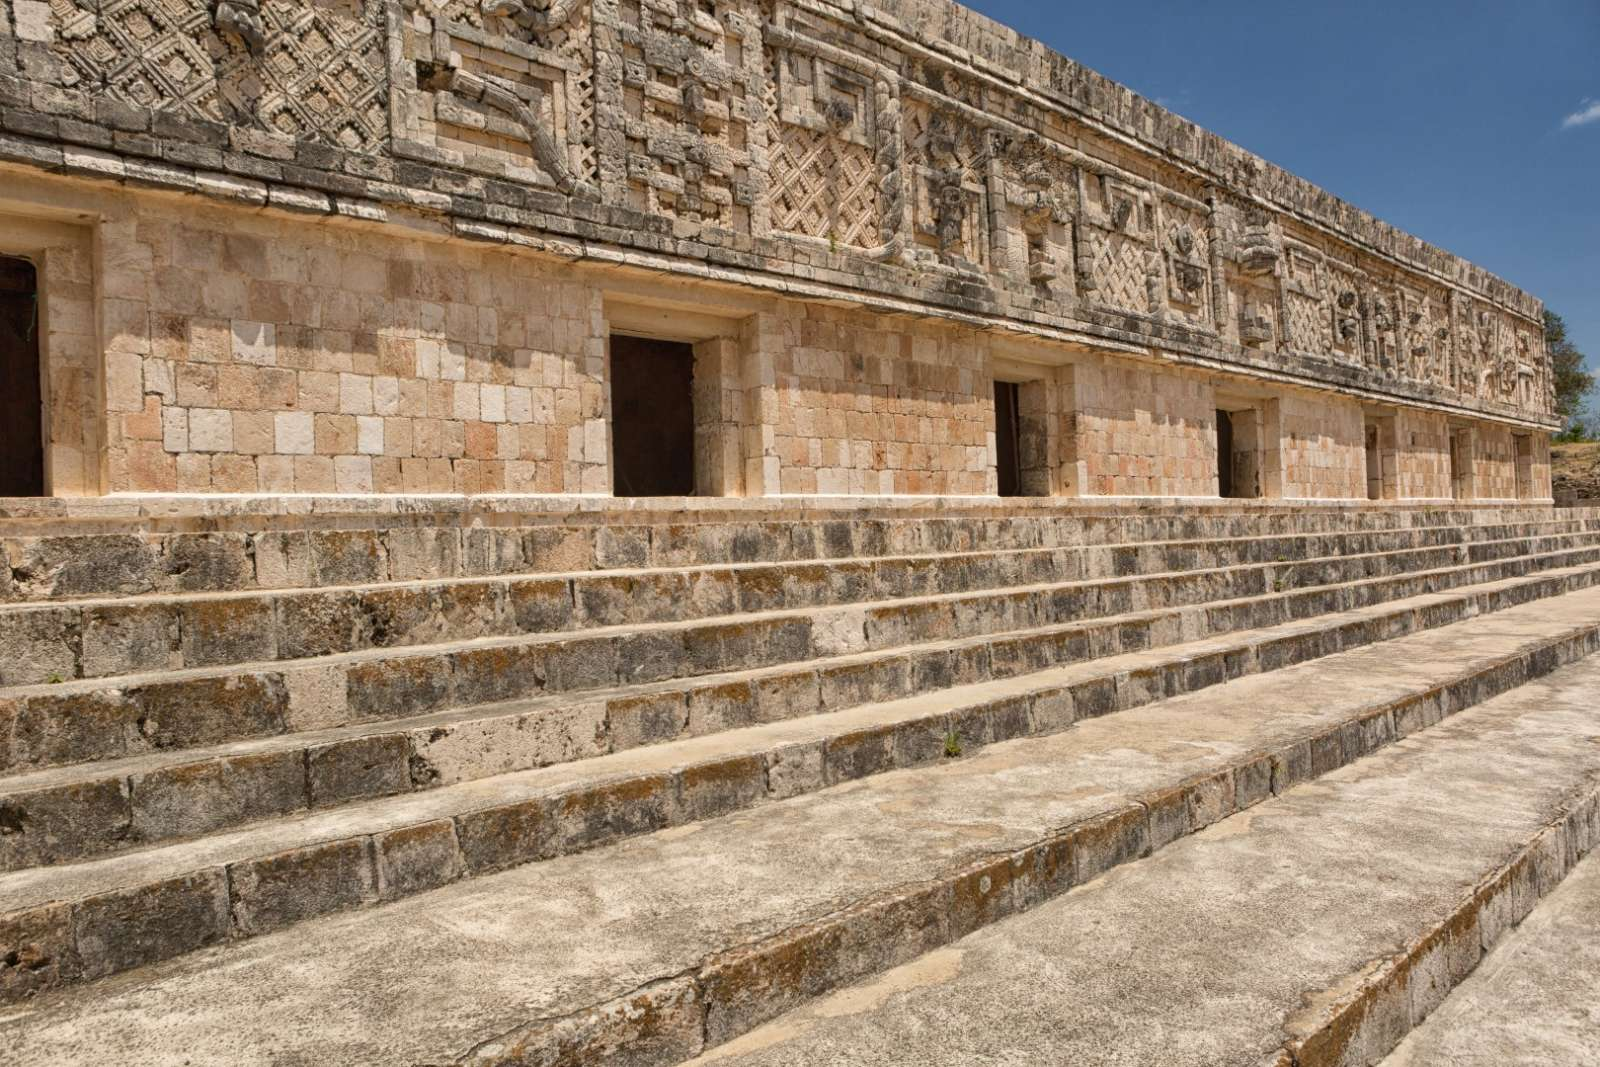 Steps and carvings at Uxmal, Mexico